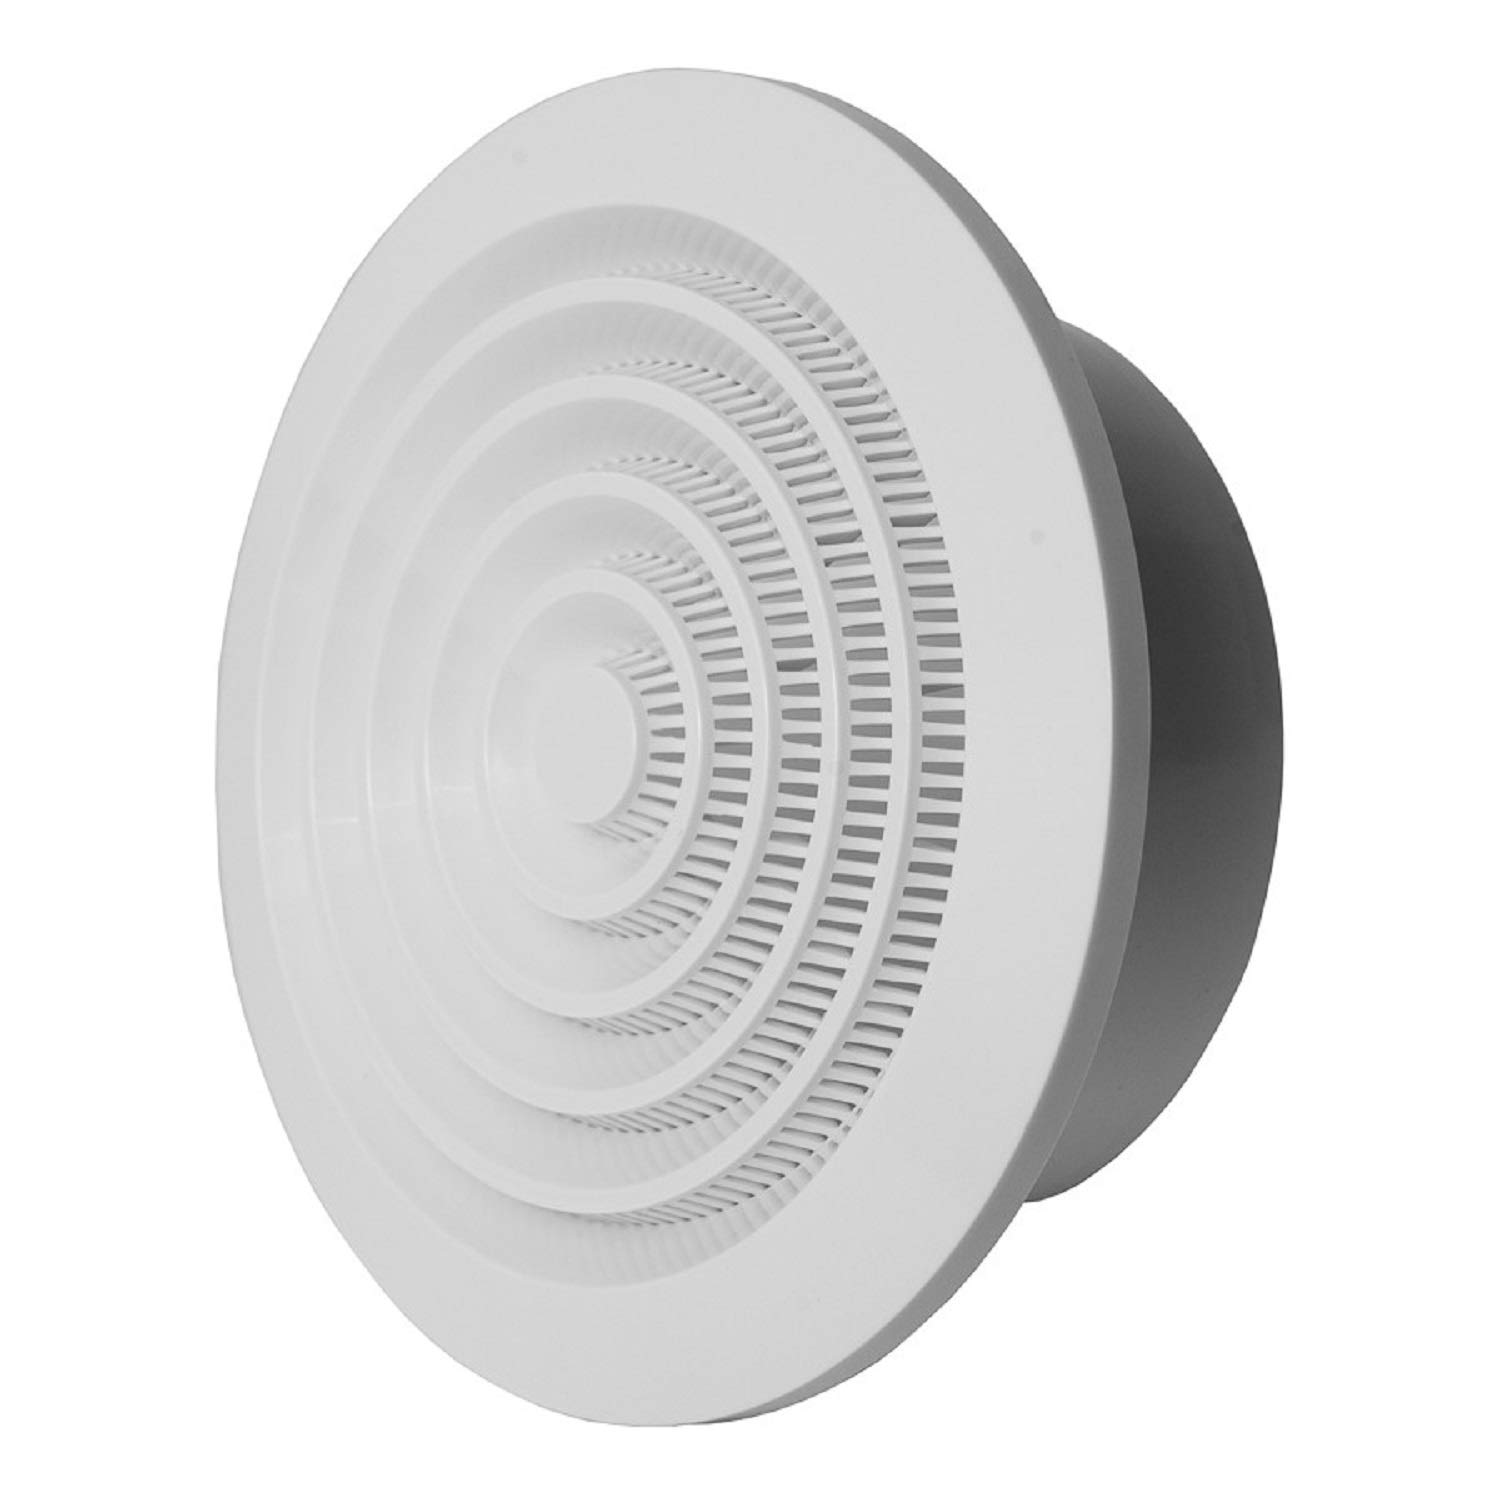 Ventilation Louvre Cover Grille Protection against Insects, Round, Diameter 125mm–5inch, White ABS Grate NGA125 Diameter 125mm-5inch Europlast